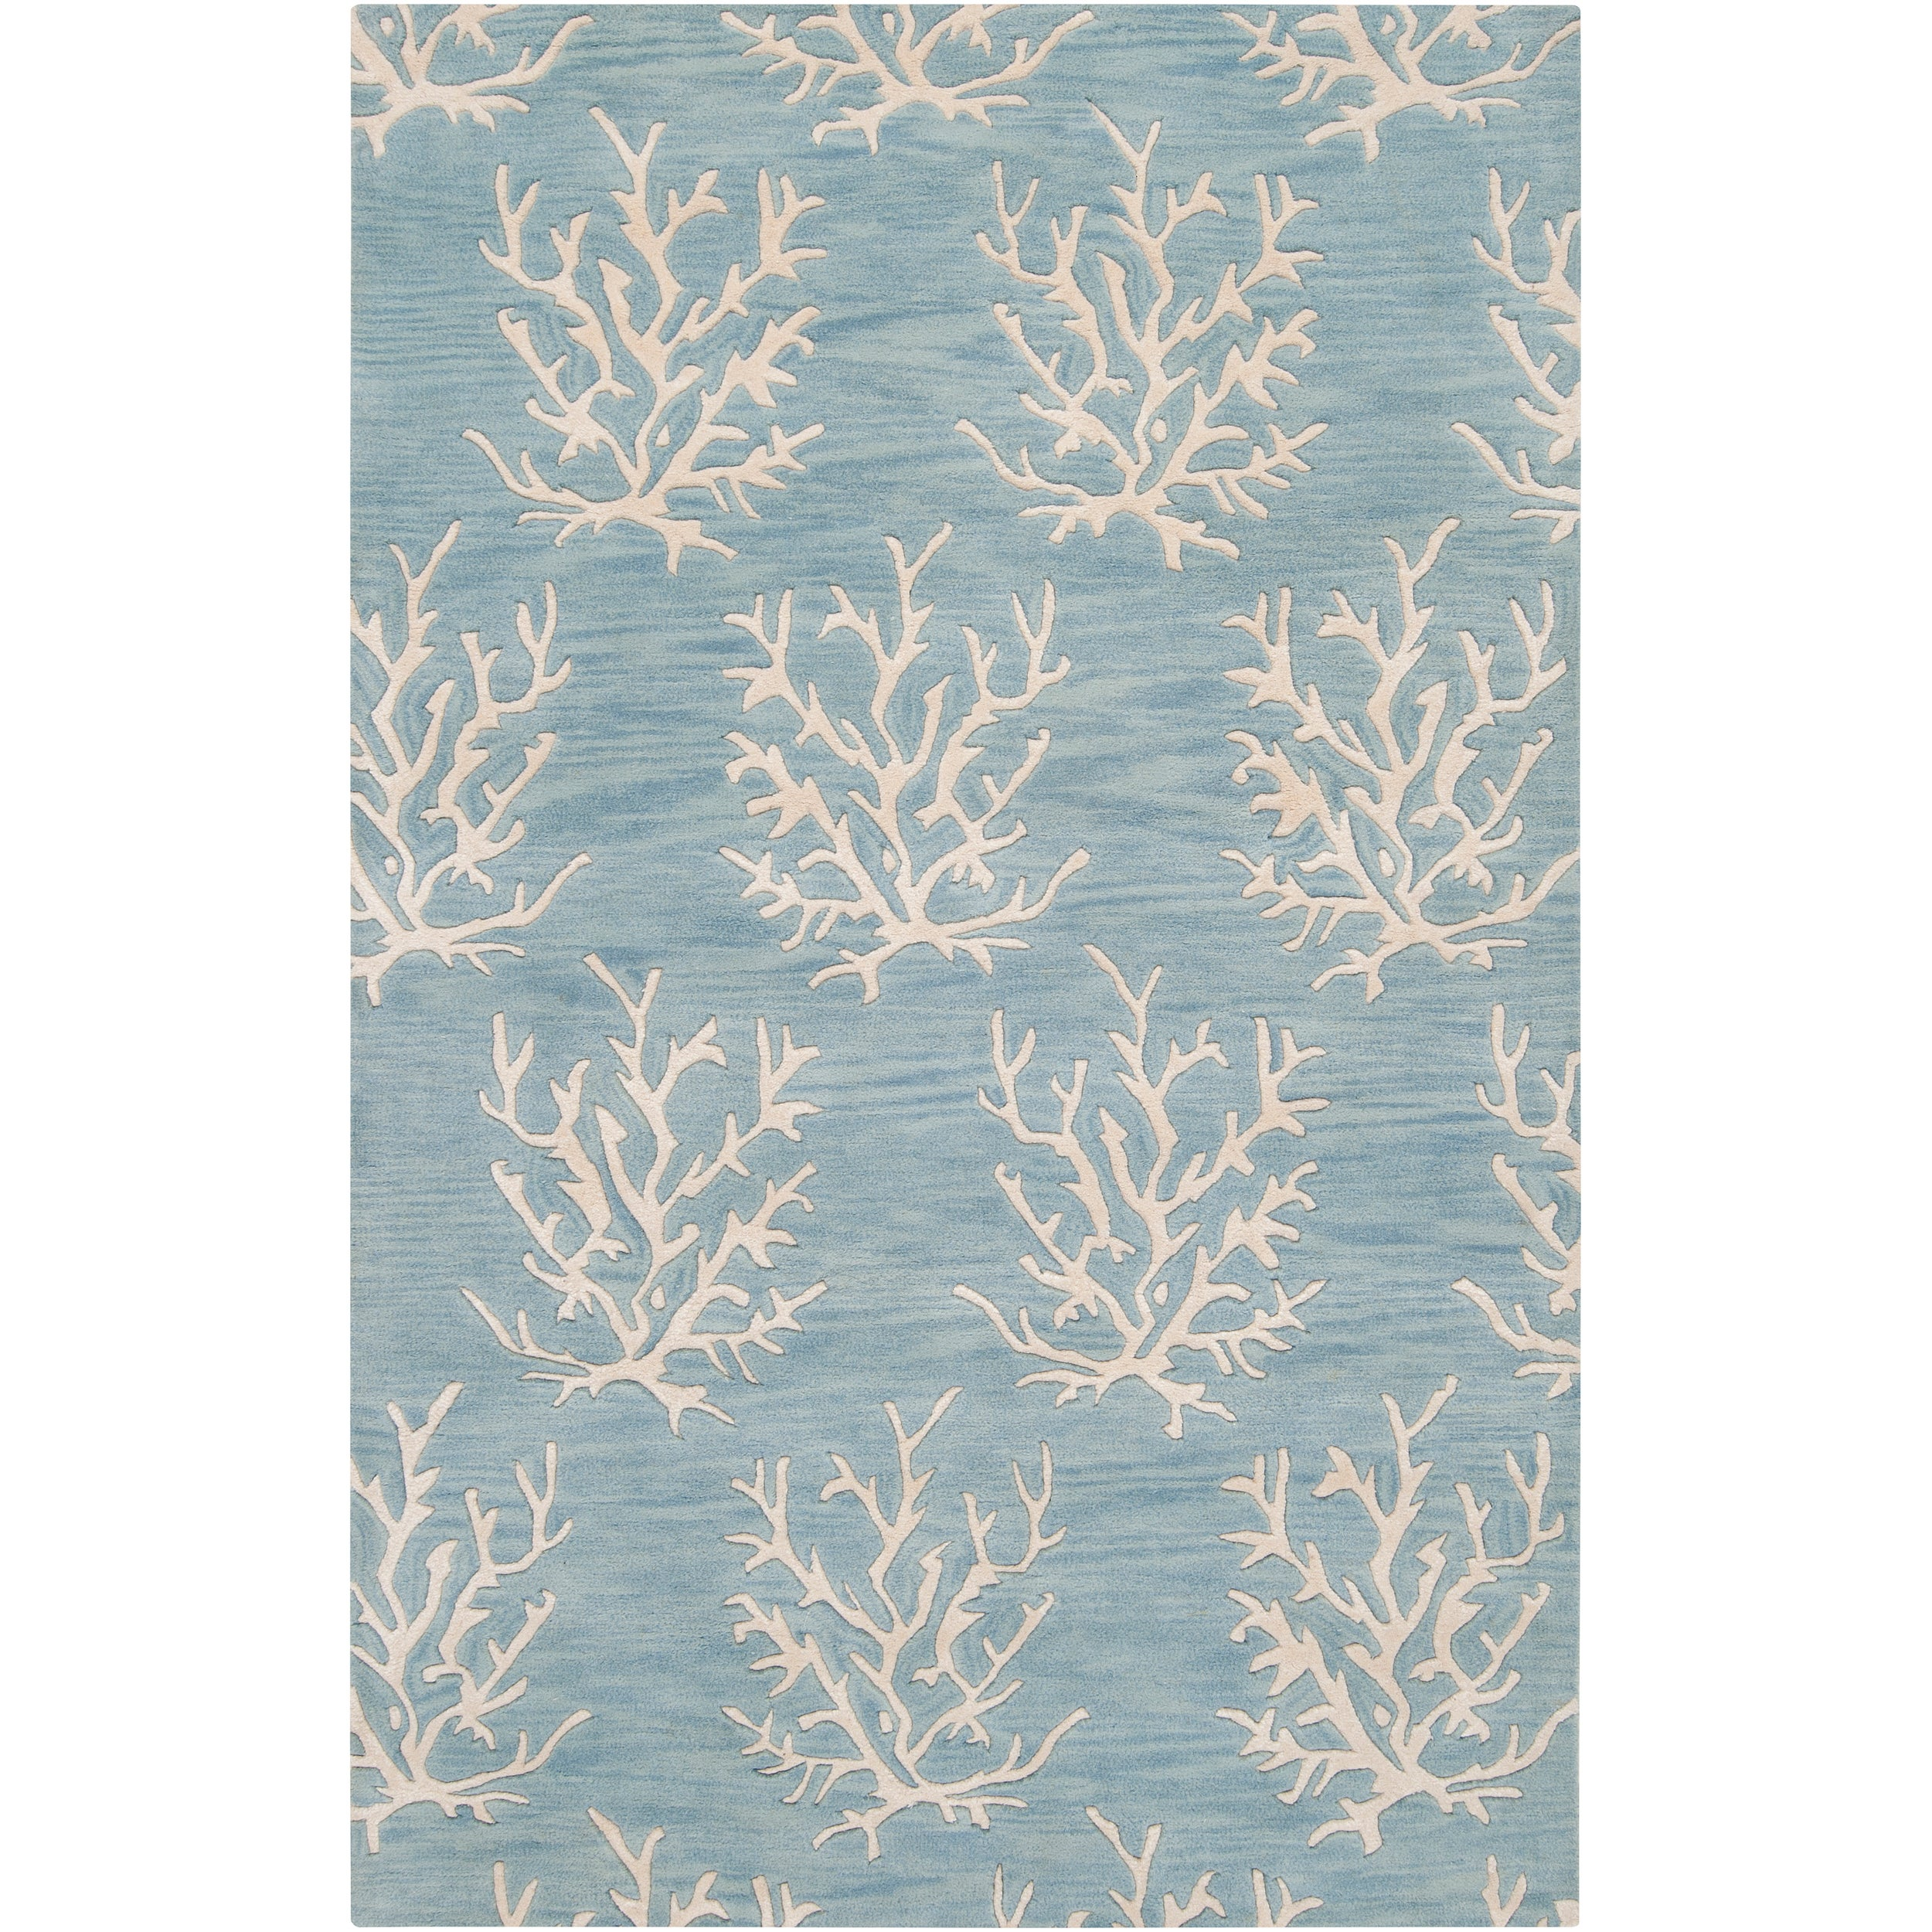 Hand-tufted Bacelot Bay Blue Beach Inspired Wool Rug (8' x 11')